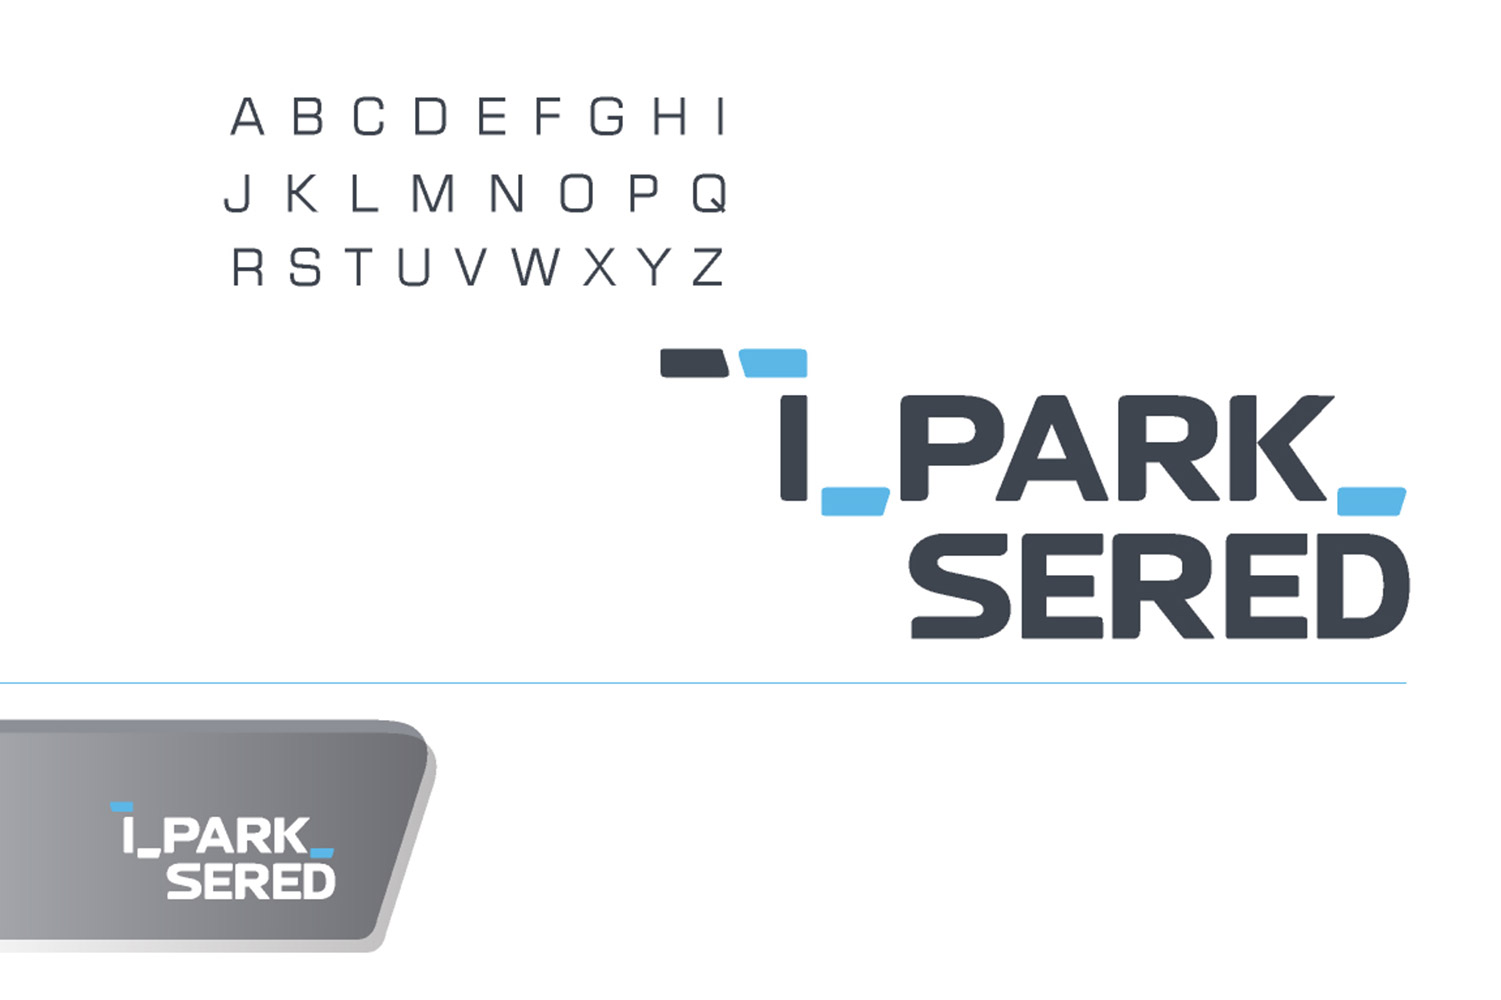 iPark Sered, Corporate Identity image